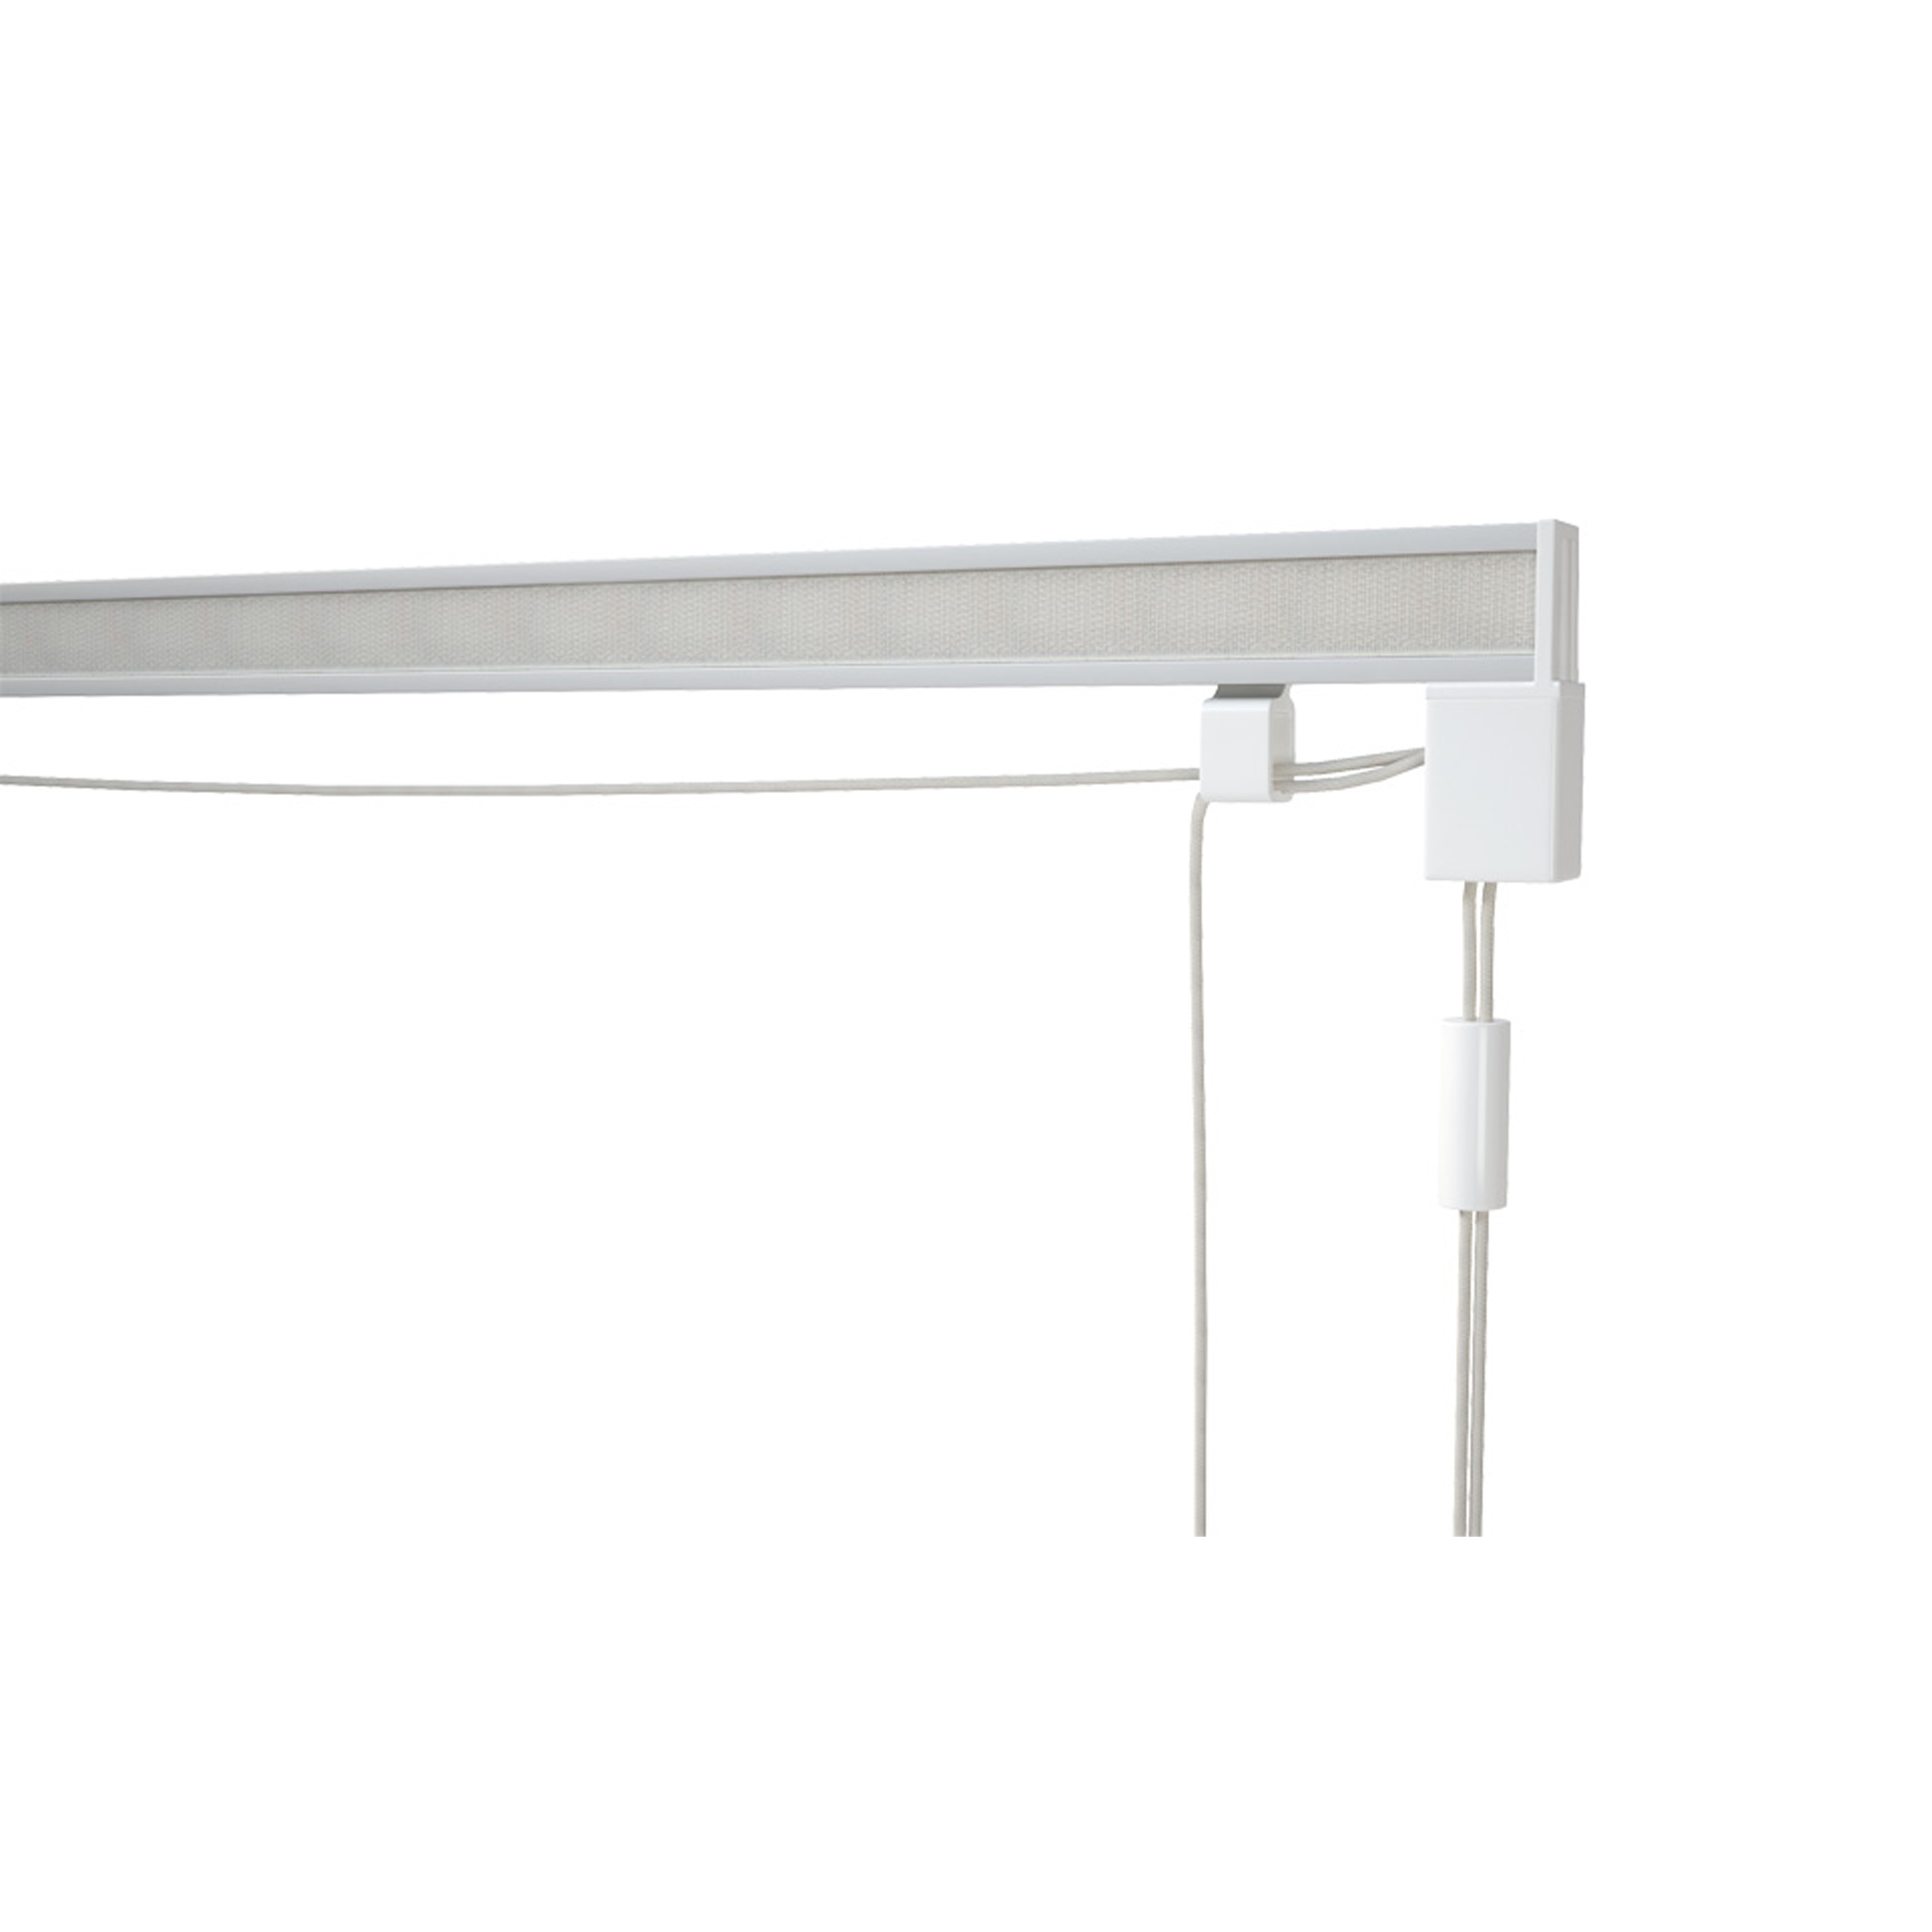 Corded Roman Blind Track Systems